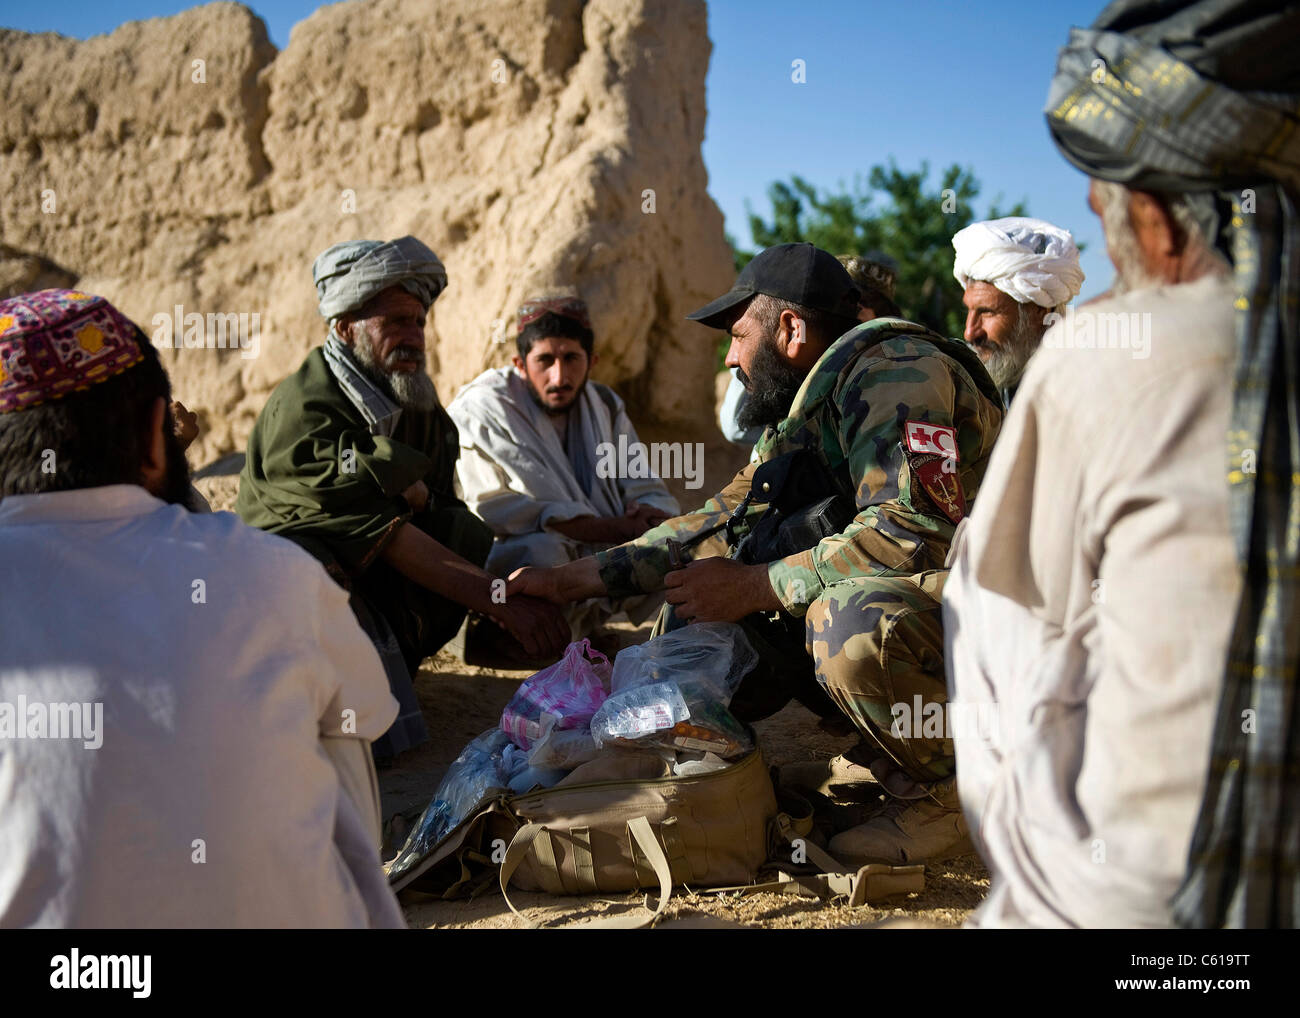 An Afghan commando medic assisted by U.S. Army Special Forces and Navy SEALs with Special Operations Task Force - Stock Image